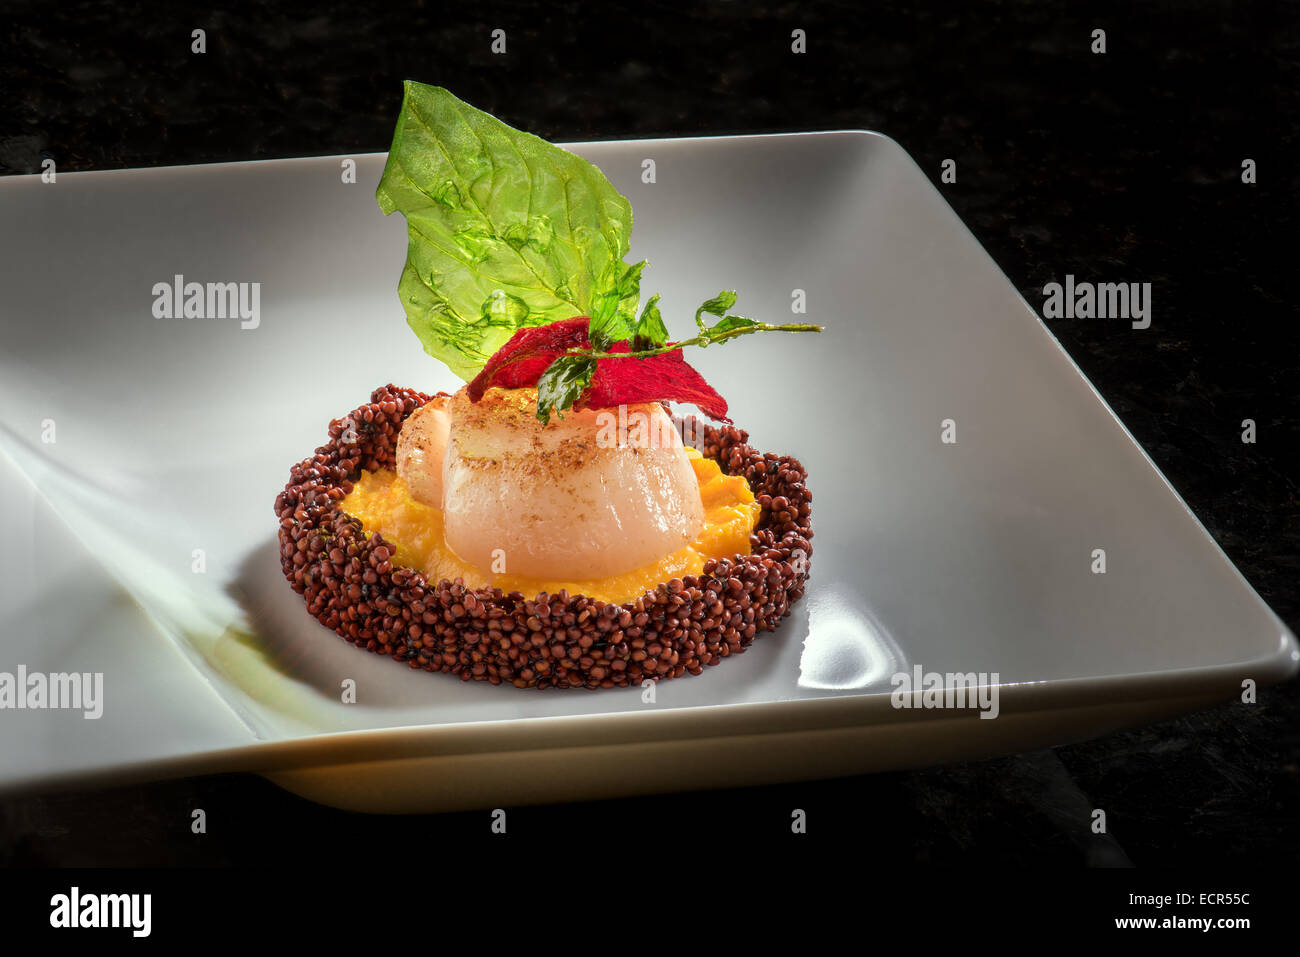 Scallop pumpkin puree fried basil beetroot thyme Quinoa Amuse-Bouche fine food - Stock Image